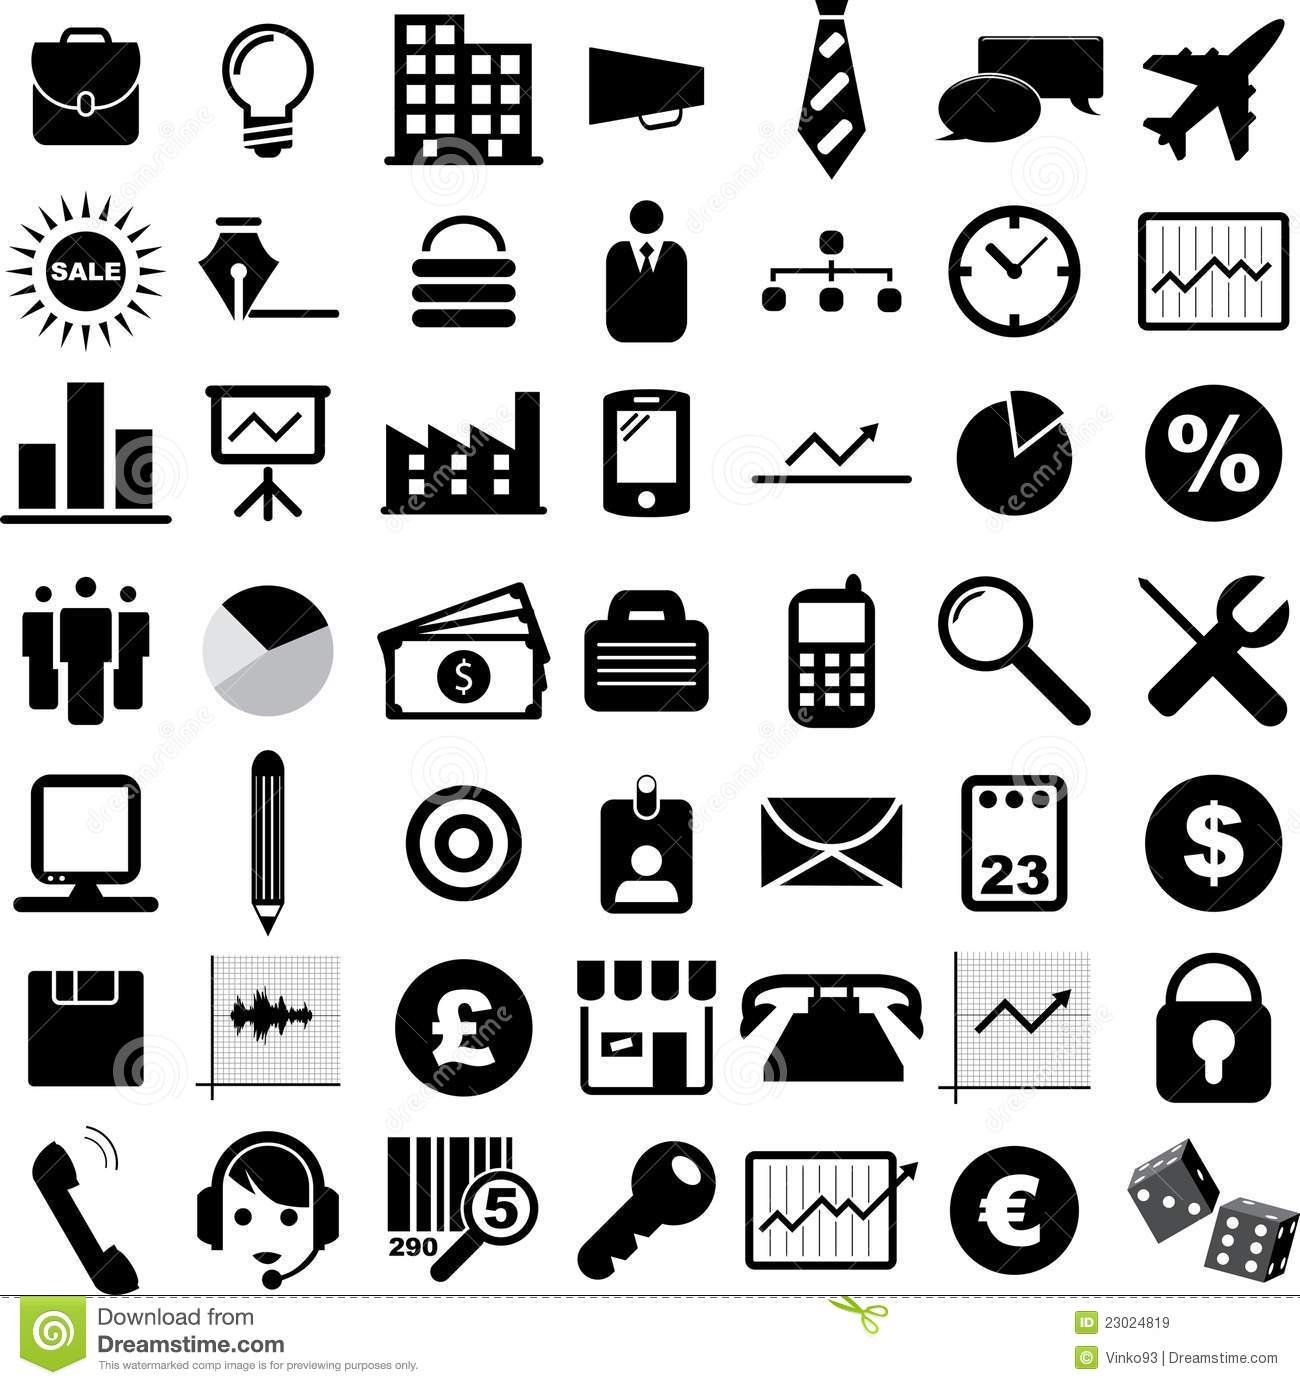 Black and White Business Icons Free